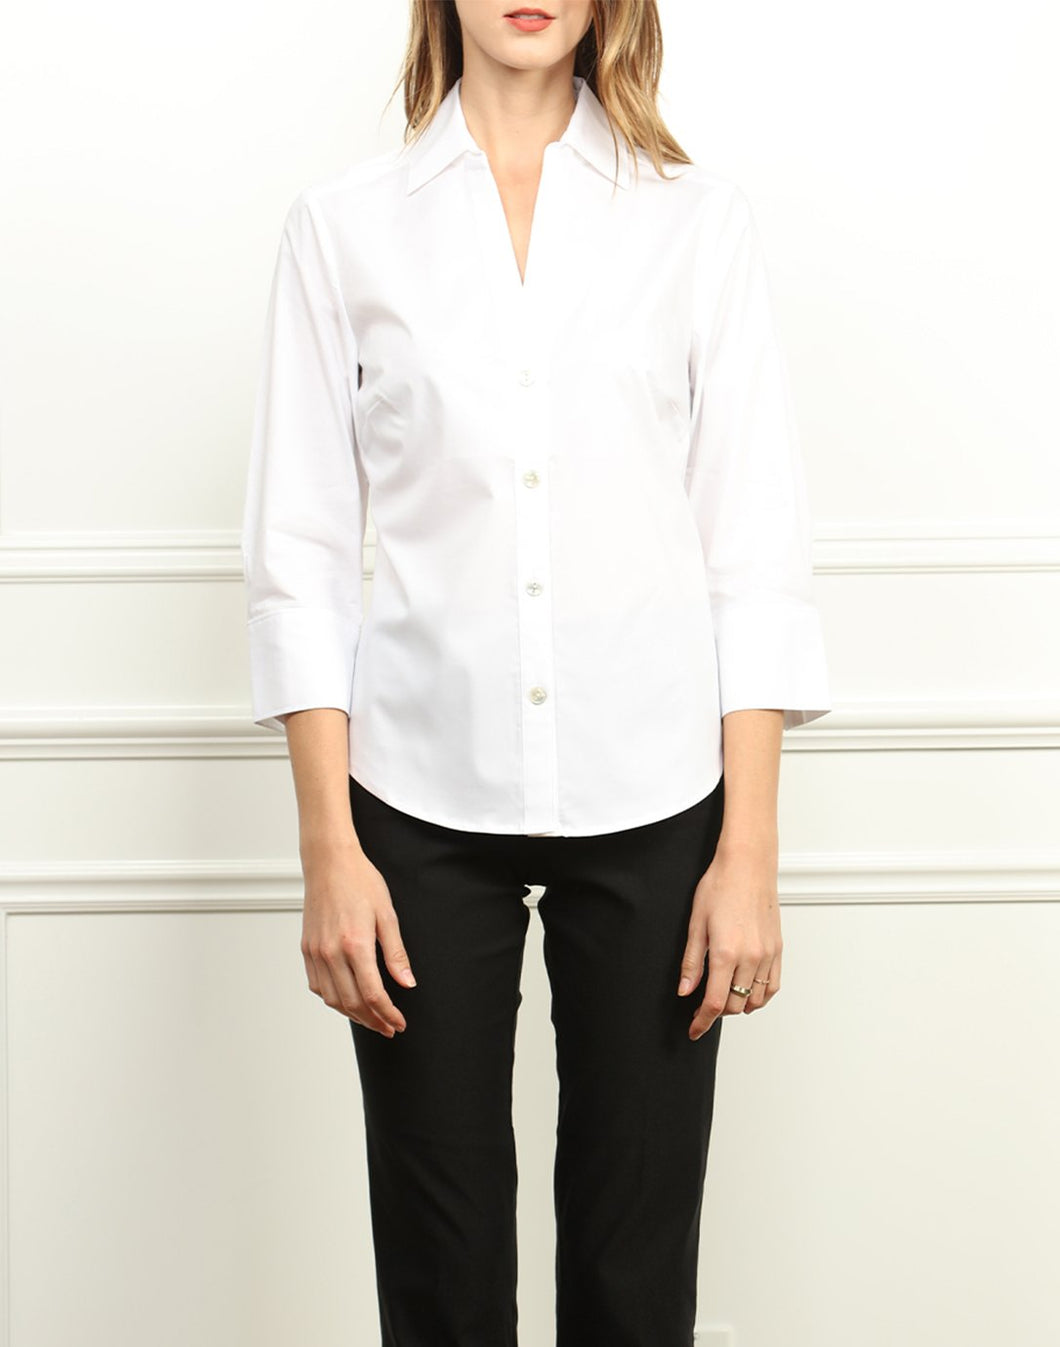 Pamela Button Front Shirt With Knit Jersey Back In White